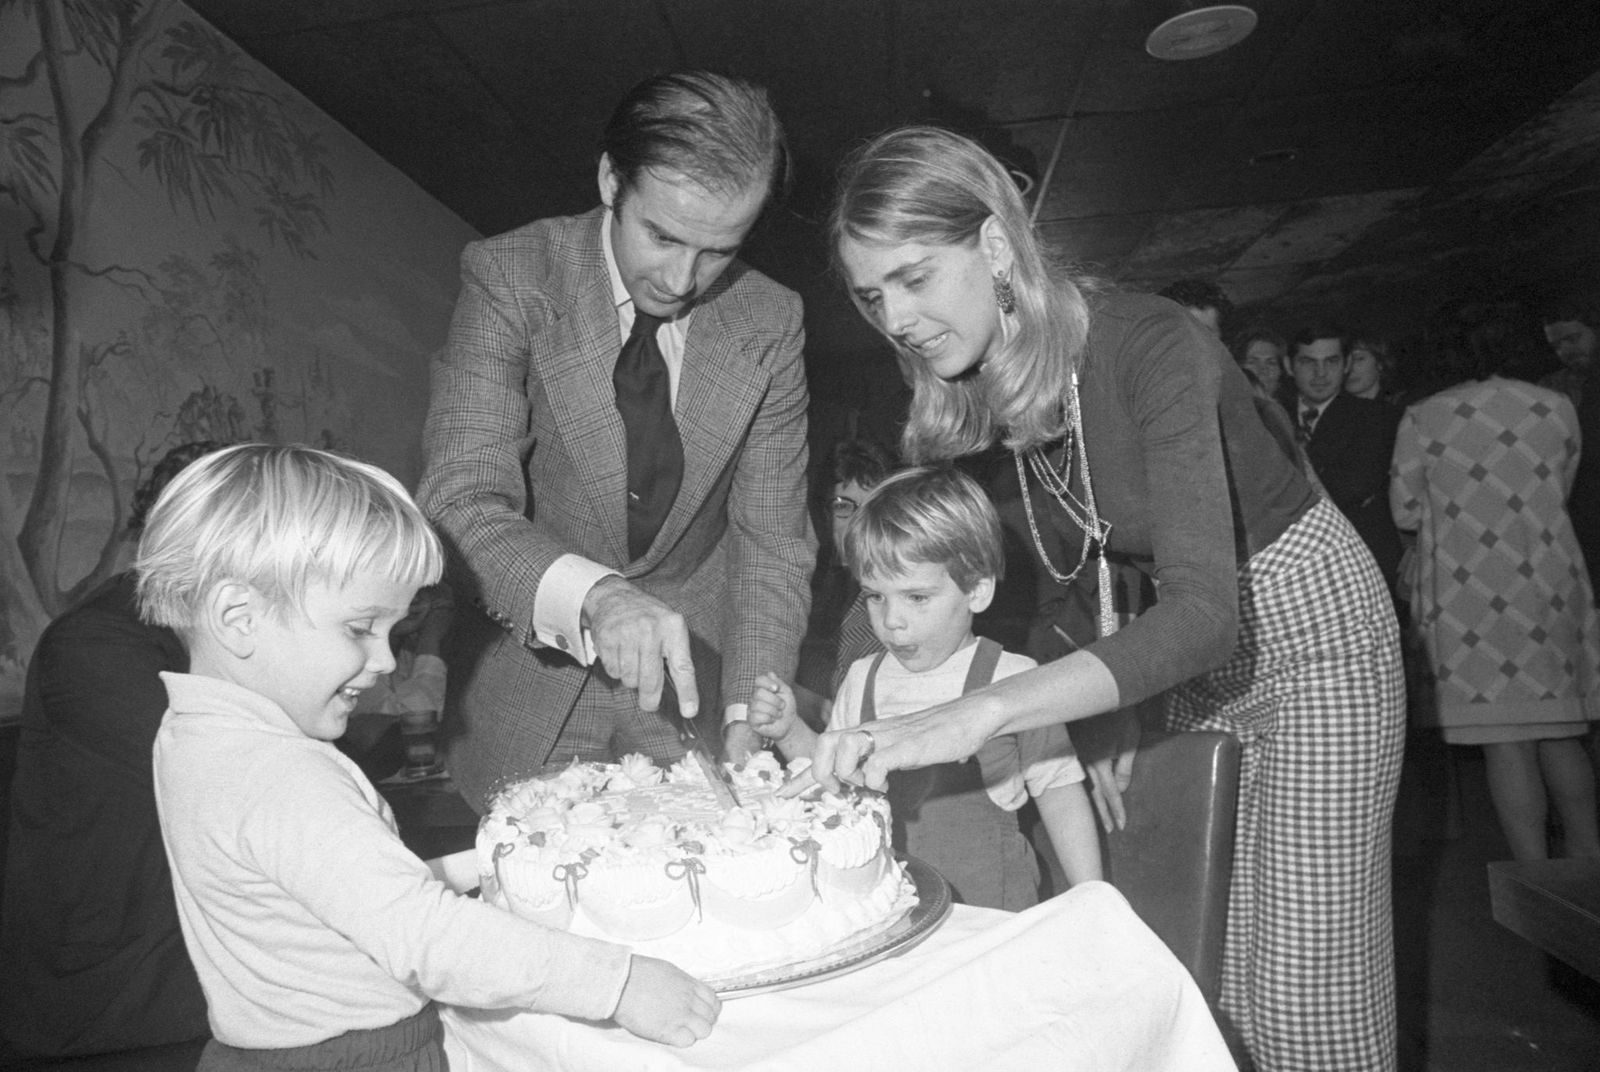 Joe Biden with late wife Neilia and sons Hunter and Beau celebrating his 30th birthday at a party in Wilmington | Photo: Bettmann/Getty Images